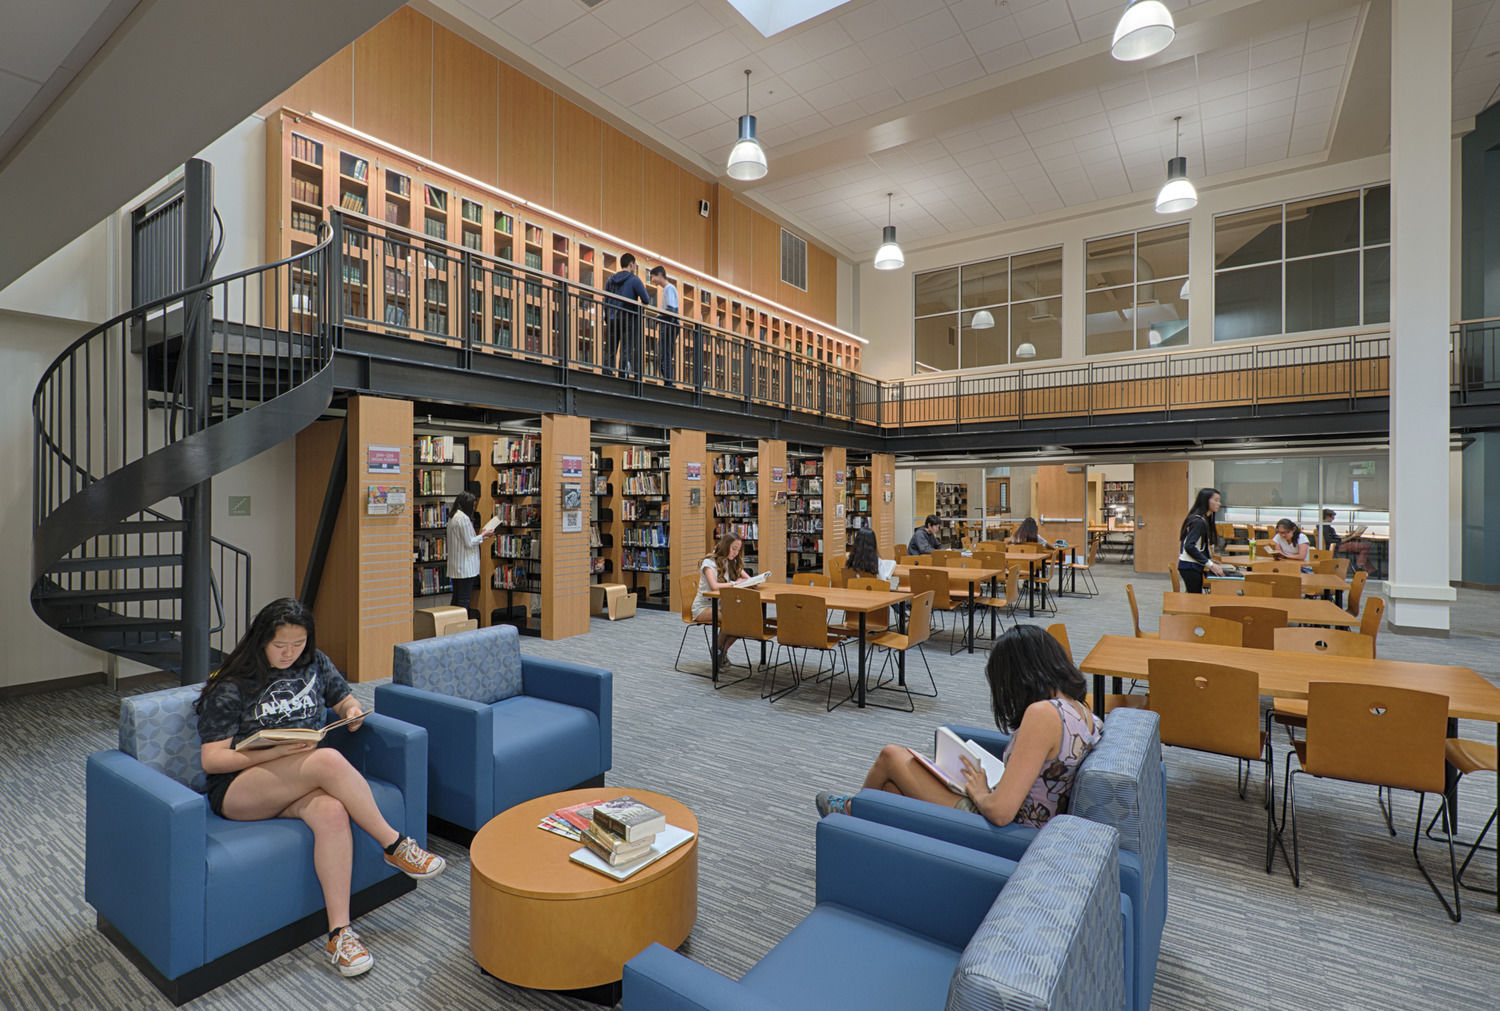 Palo Alto High School Library